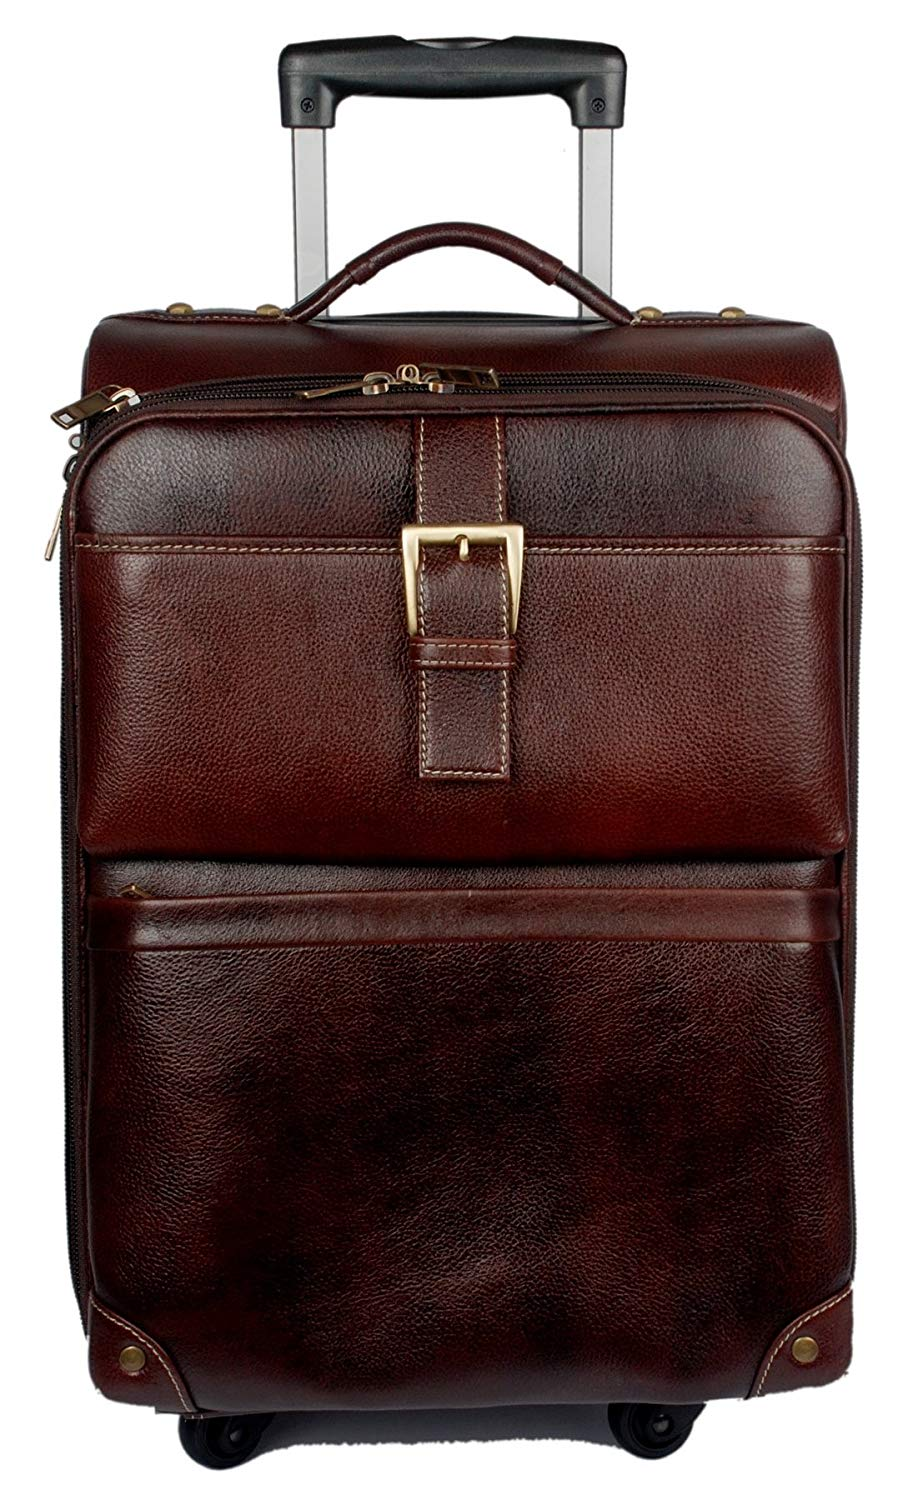 Betelgeuse brown color leather strolley travel bag